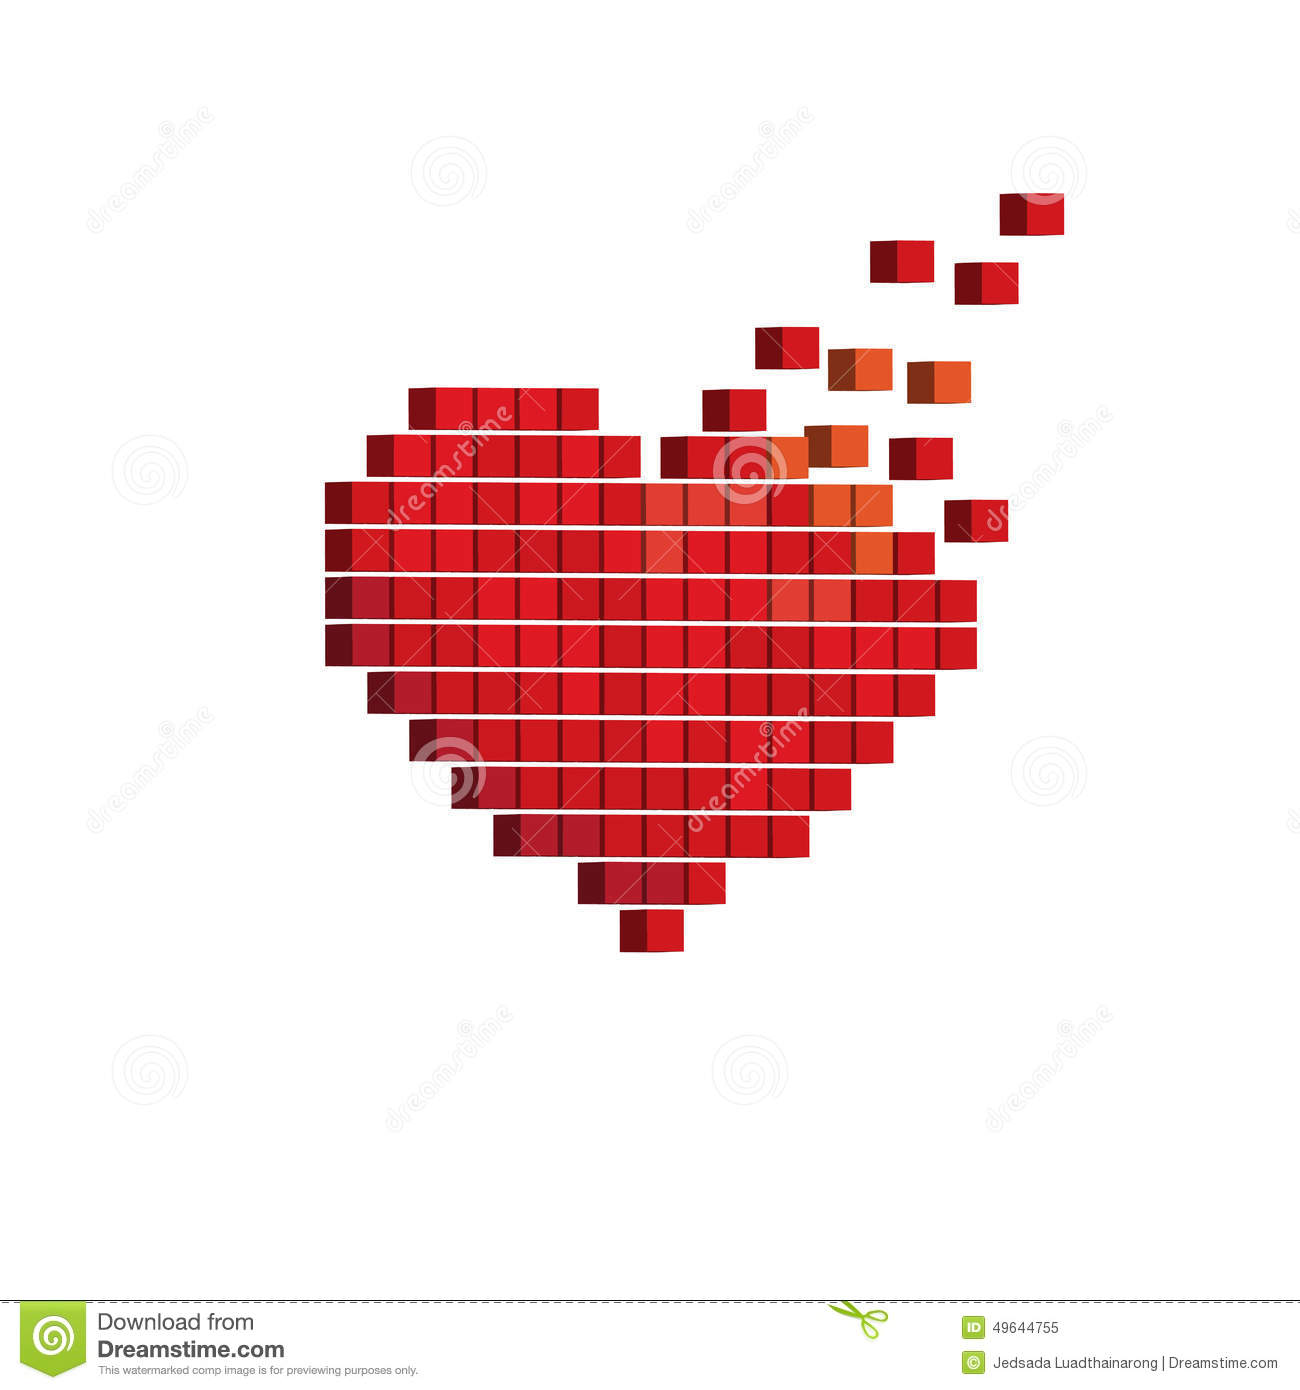 Pixels art 3d heart designs love concept stock vector illustration pixels art 3d heart designs love concept stock vector illustration of icon decoration 49644755 ccuart Gallery